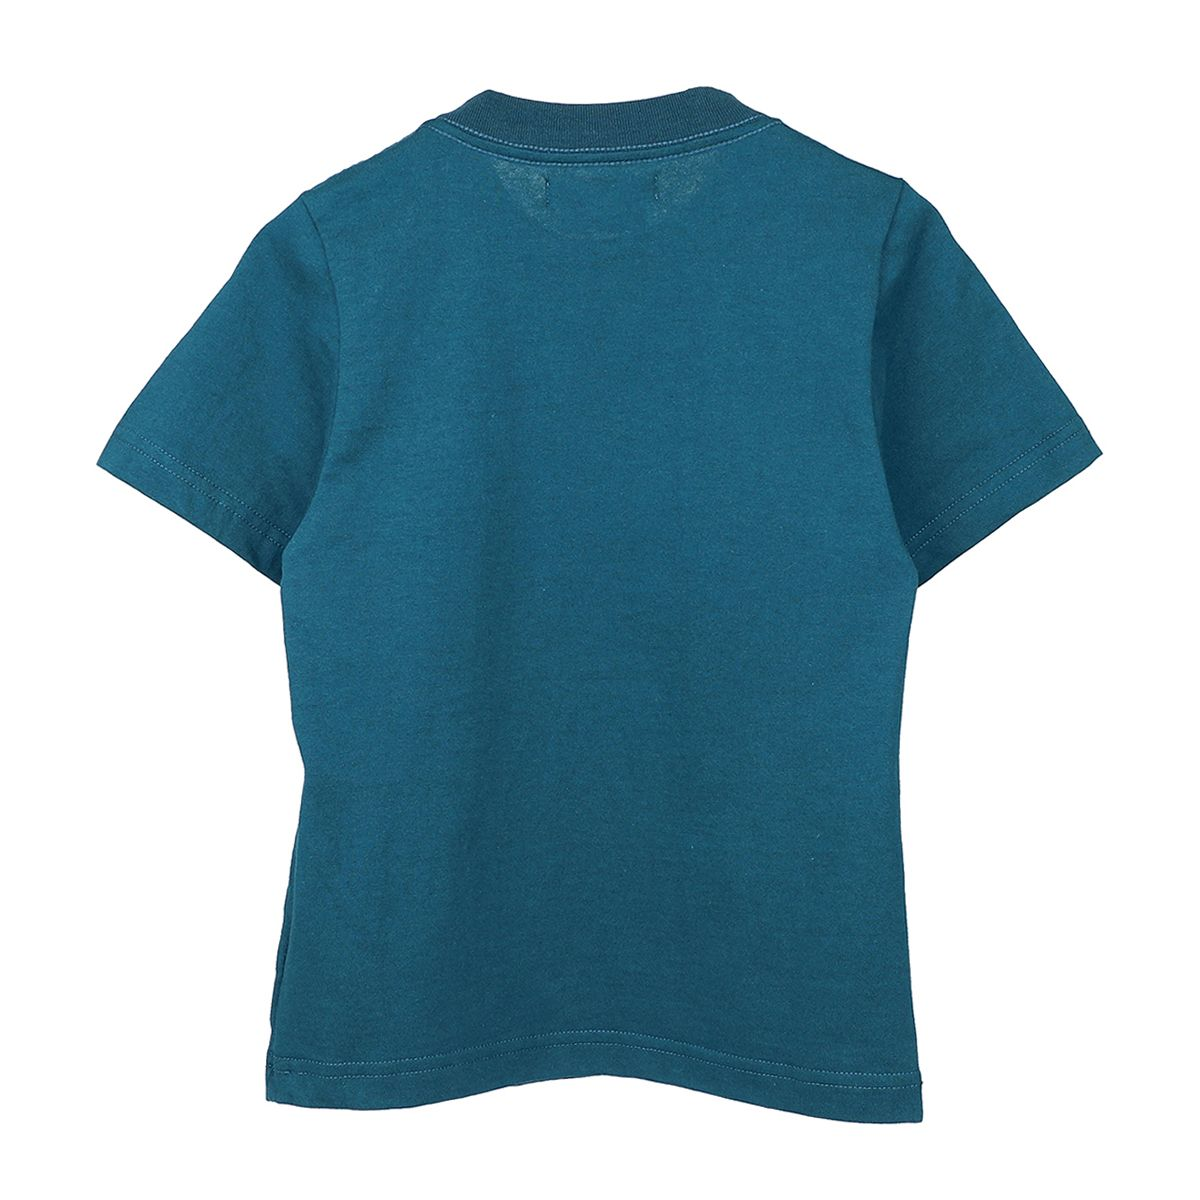 MAISIE WILEN T-SHIRT / NAVY